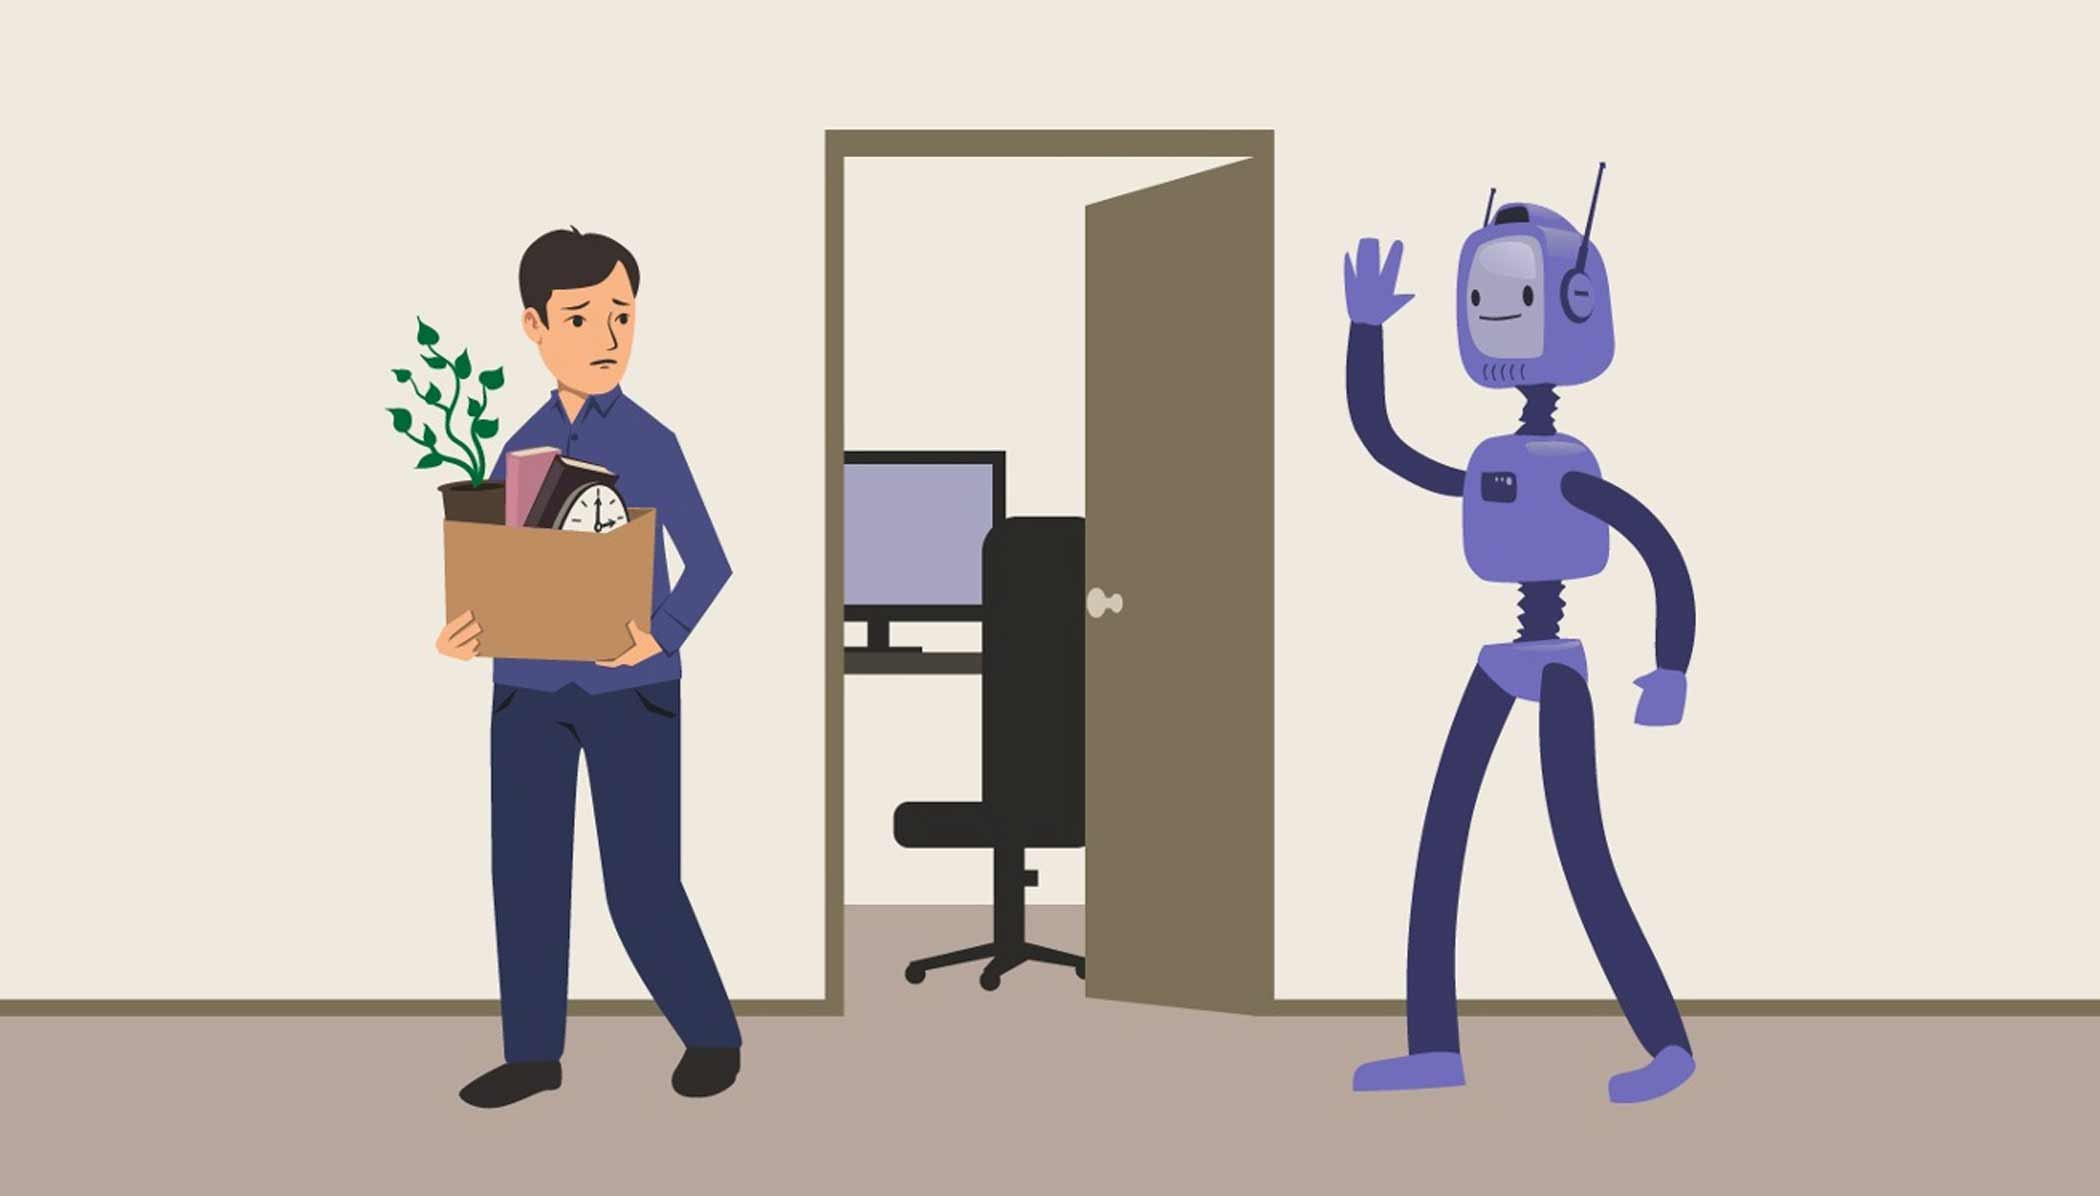 Robot replacing Human Resources Professional.